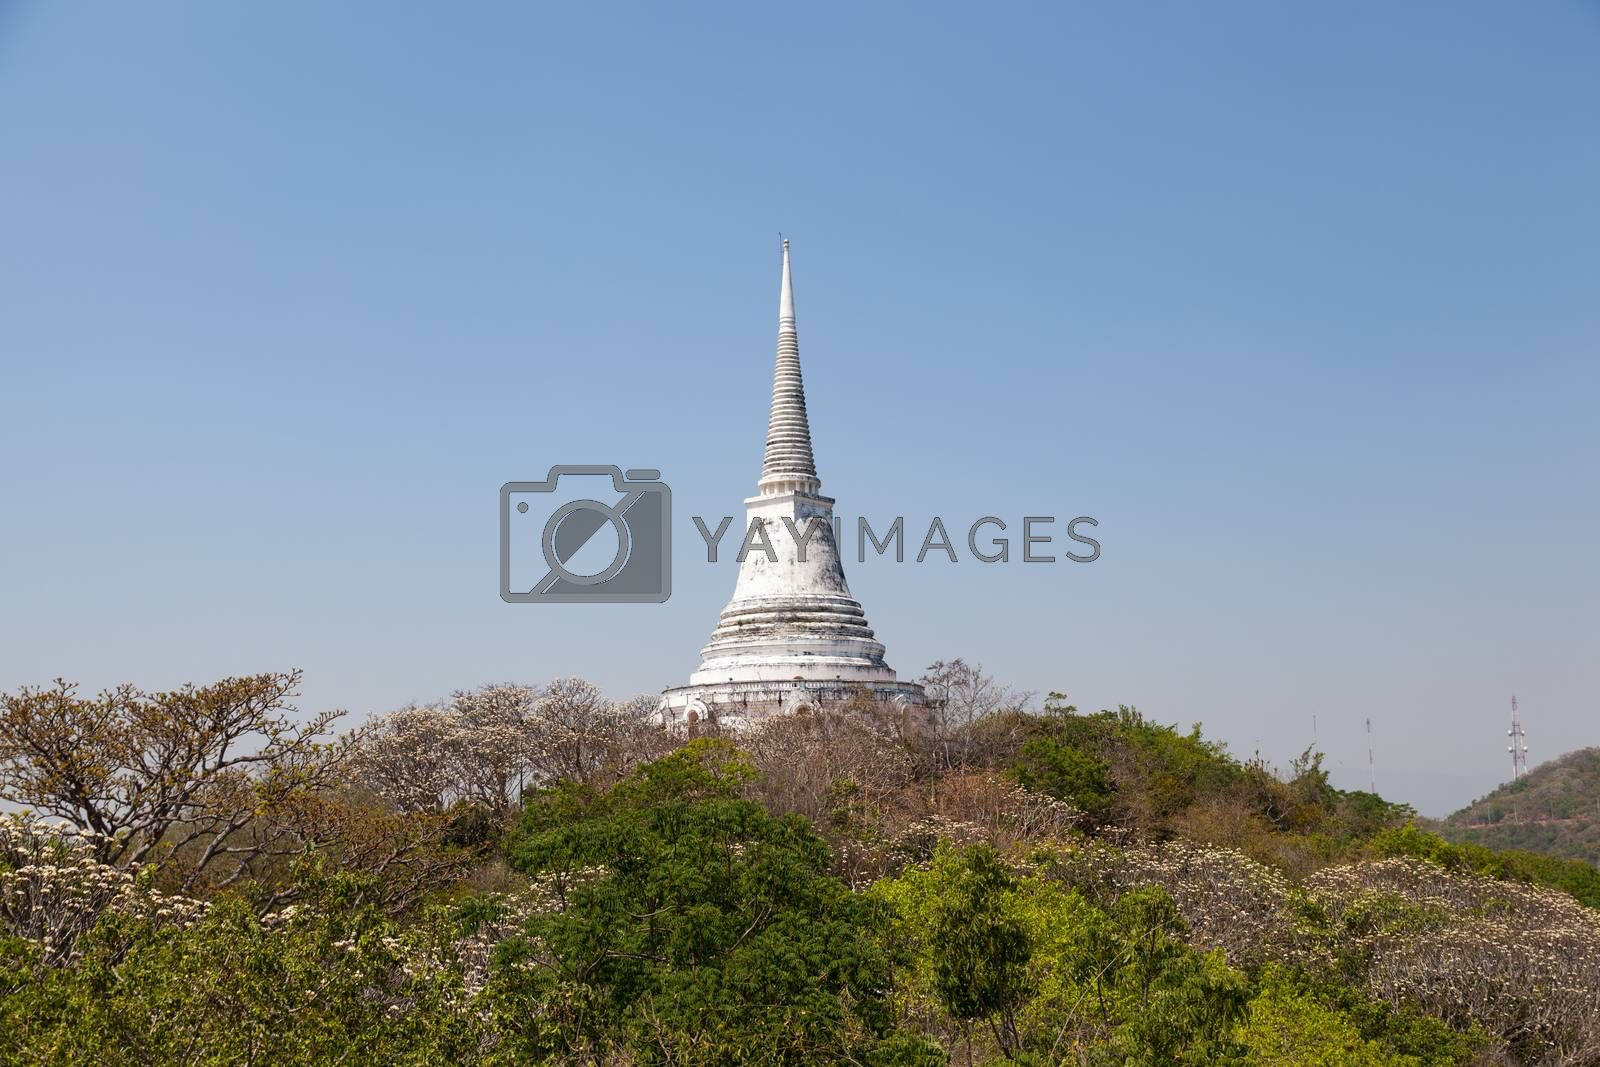 Temple and Pagoda on the high peaks. With trees A clear sky